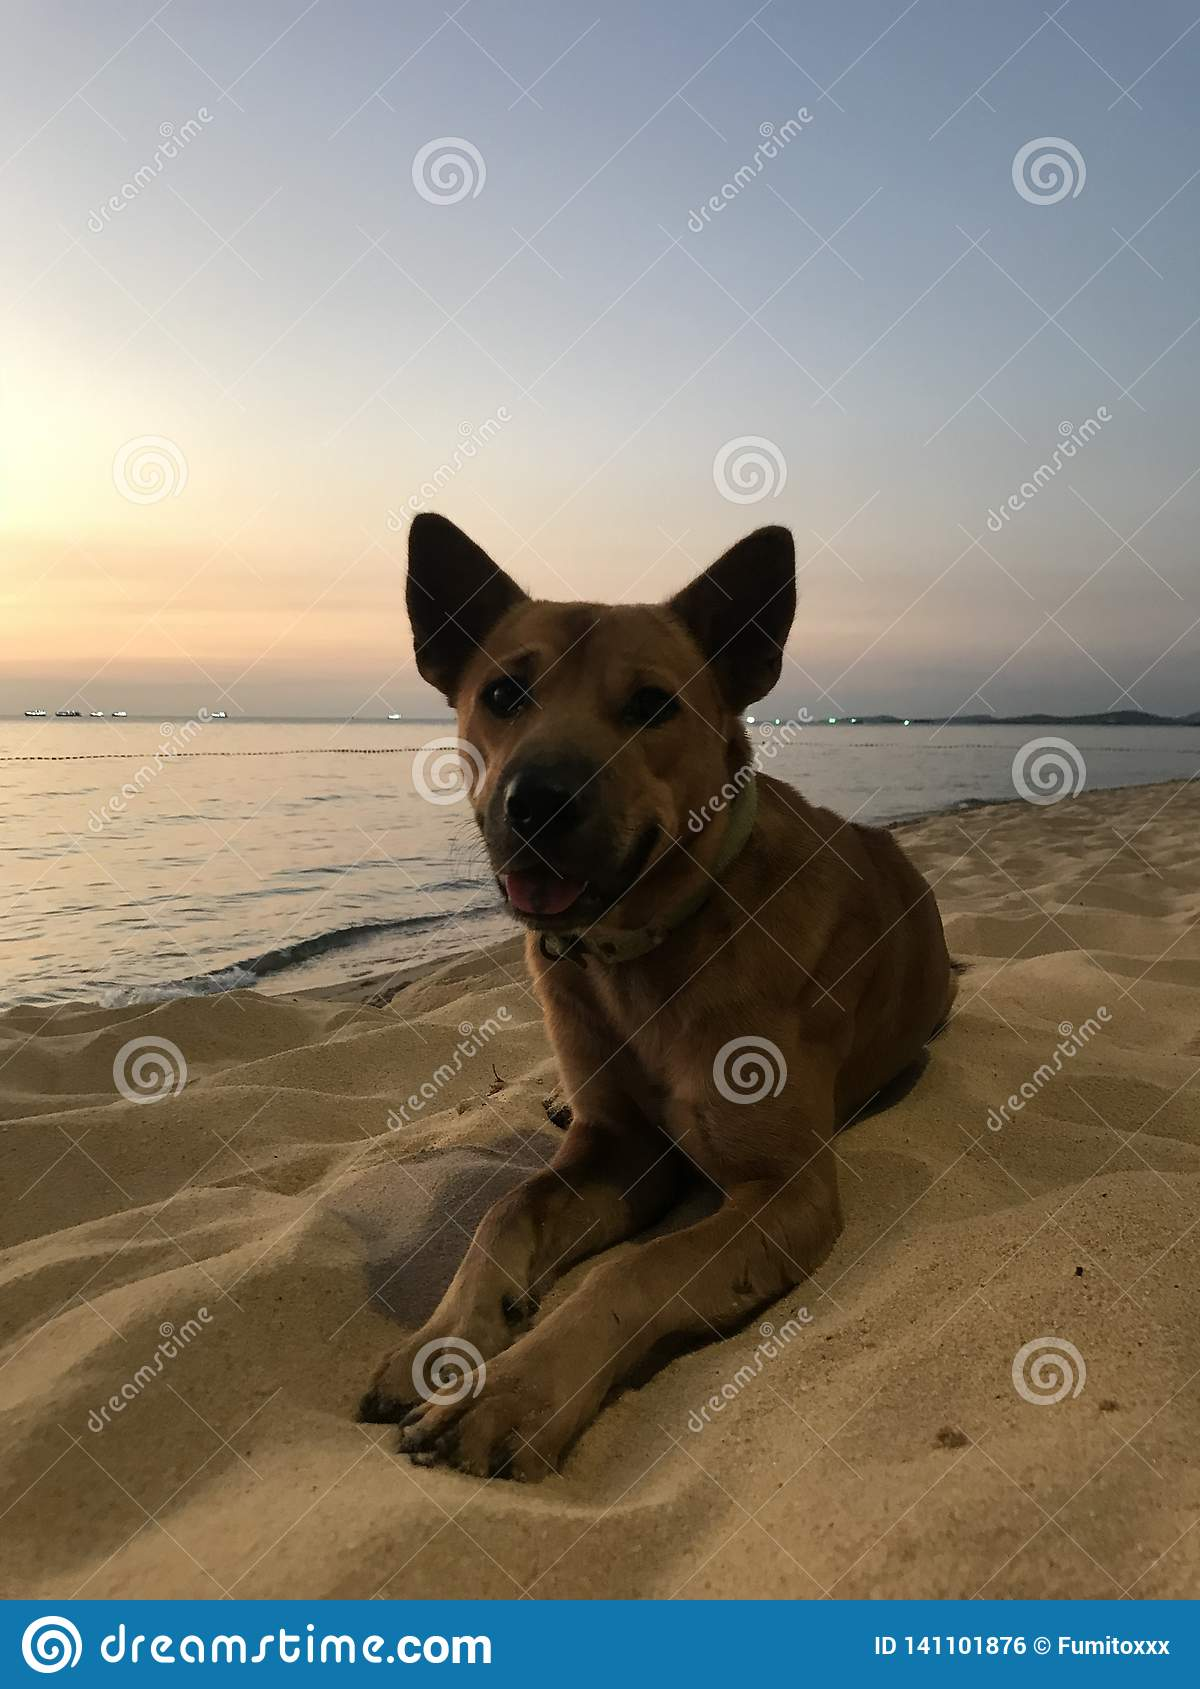 Dog on the beach at sunset